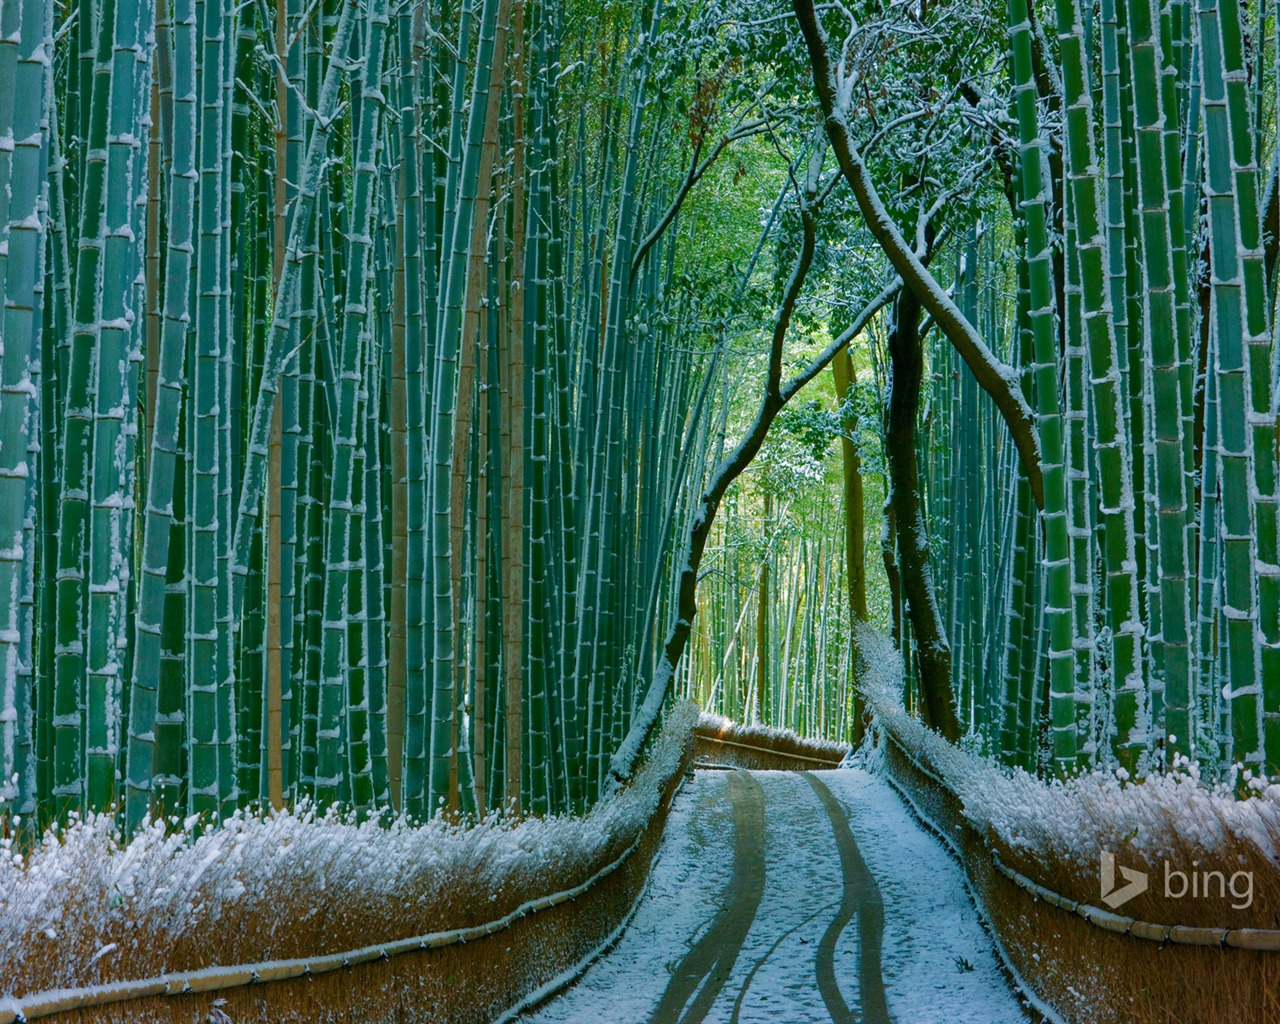 Japan Bamboo Forest Arashiyama 2016 Bing Desktop Wallpaper